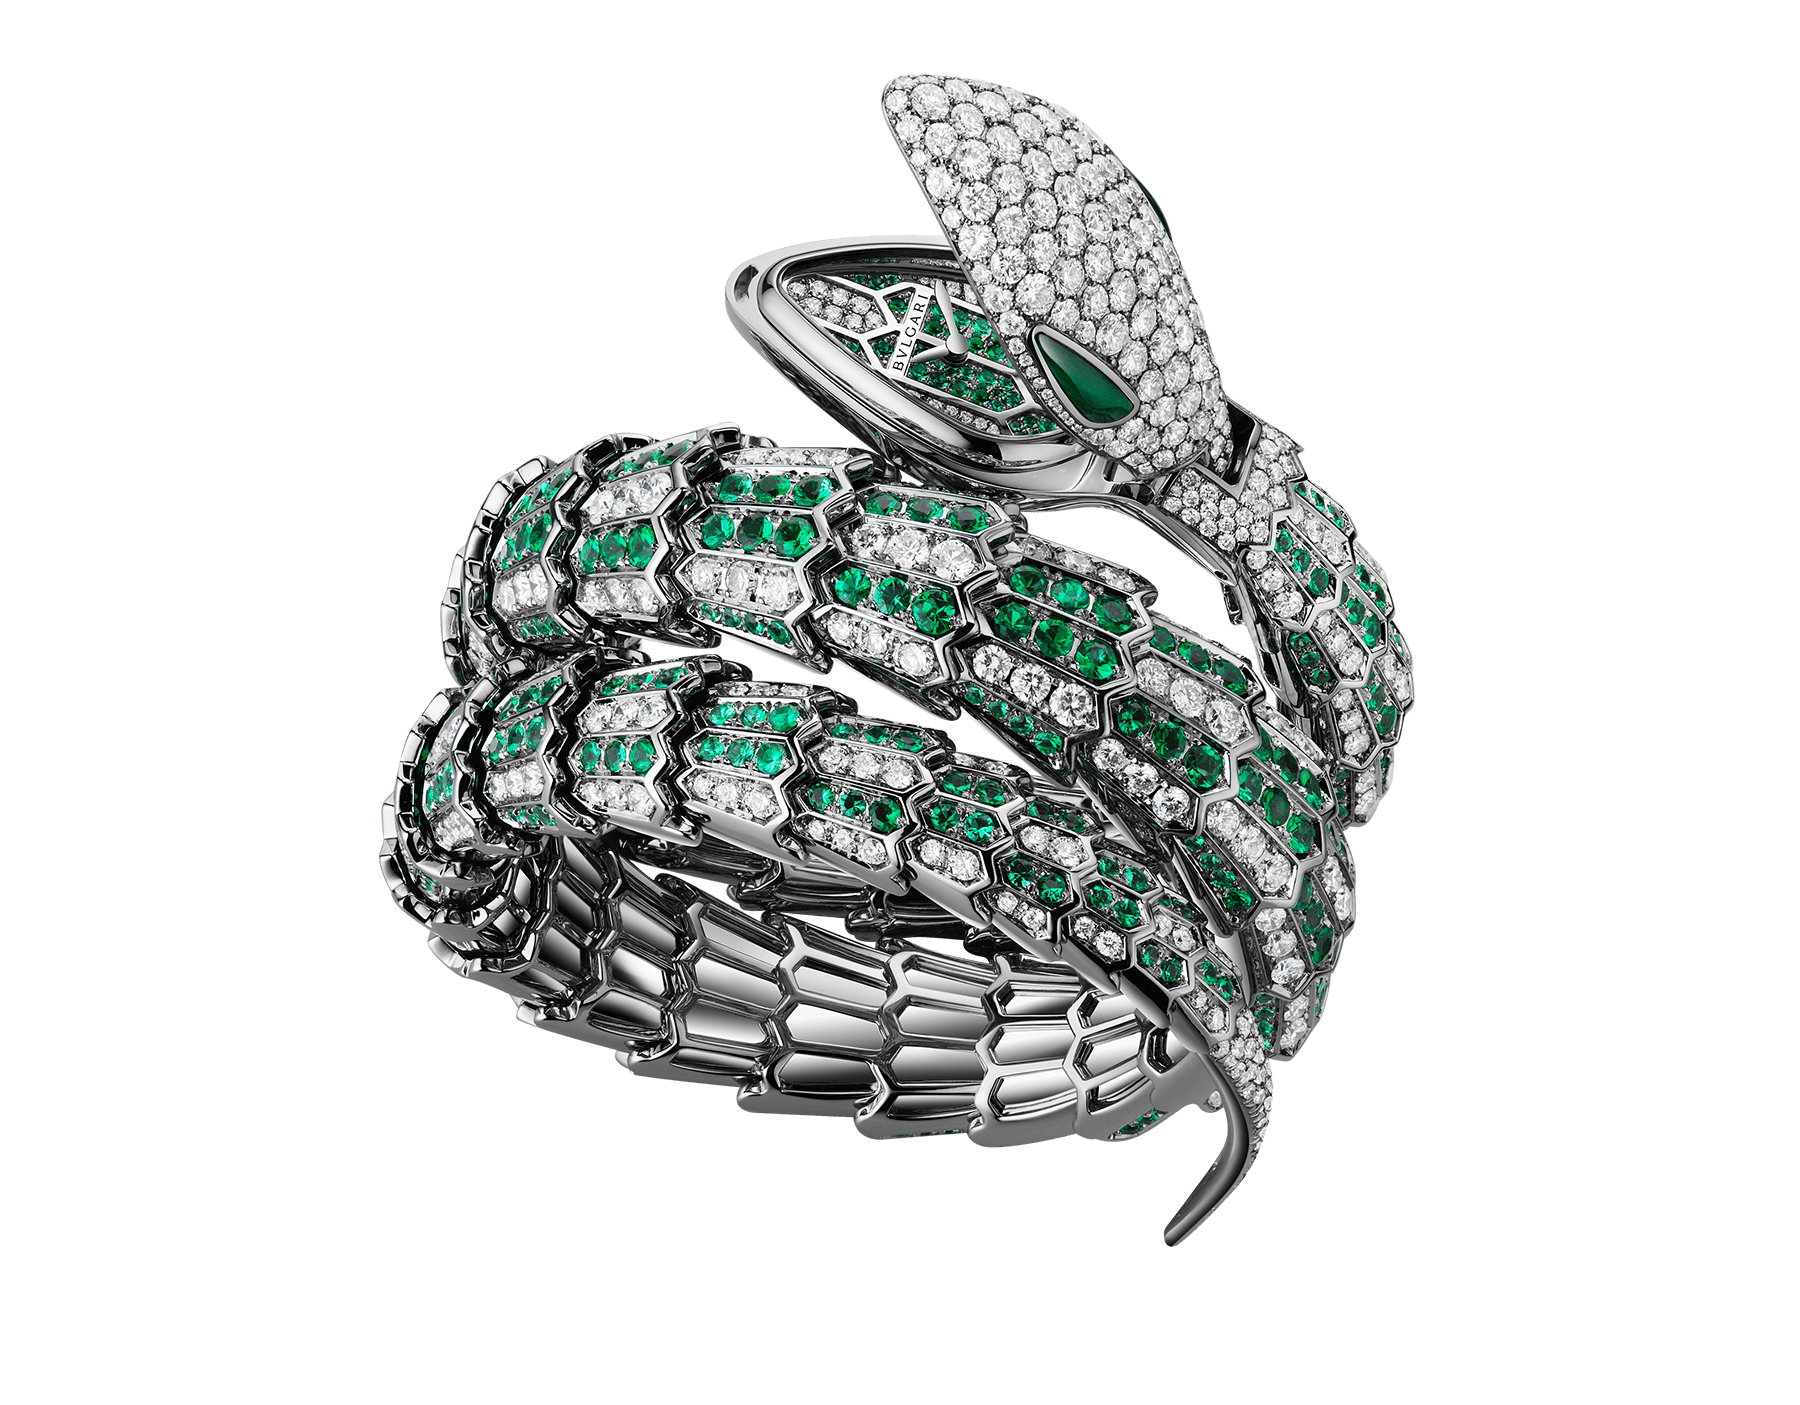 Serpenti Secret Watch with 18 kt white gold head set with brilliant cut diamonds and malachite eyes, 18 kt white gold case, 18 kt white gold dial and double spiral bracelet, both set with brilliant cut diamonds and brilliant cut emeralds. 101902 image 1